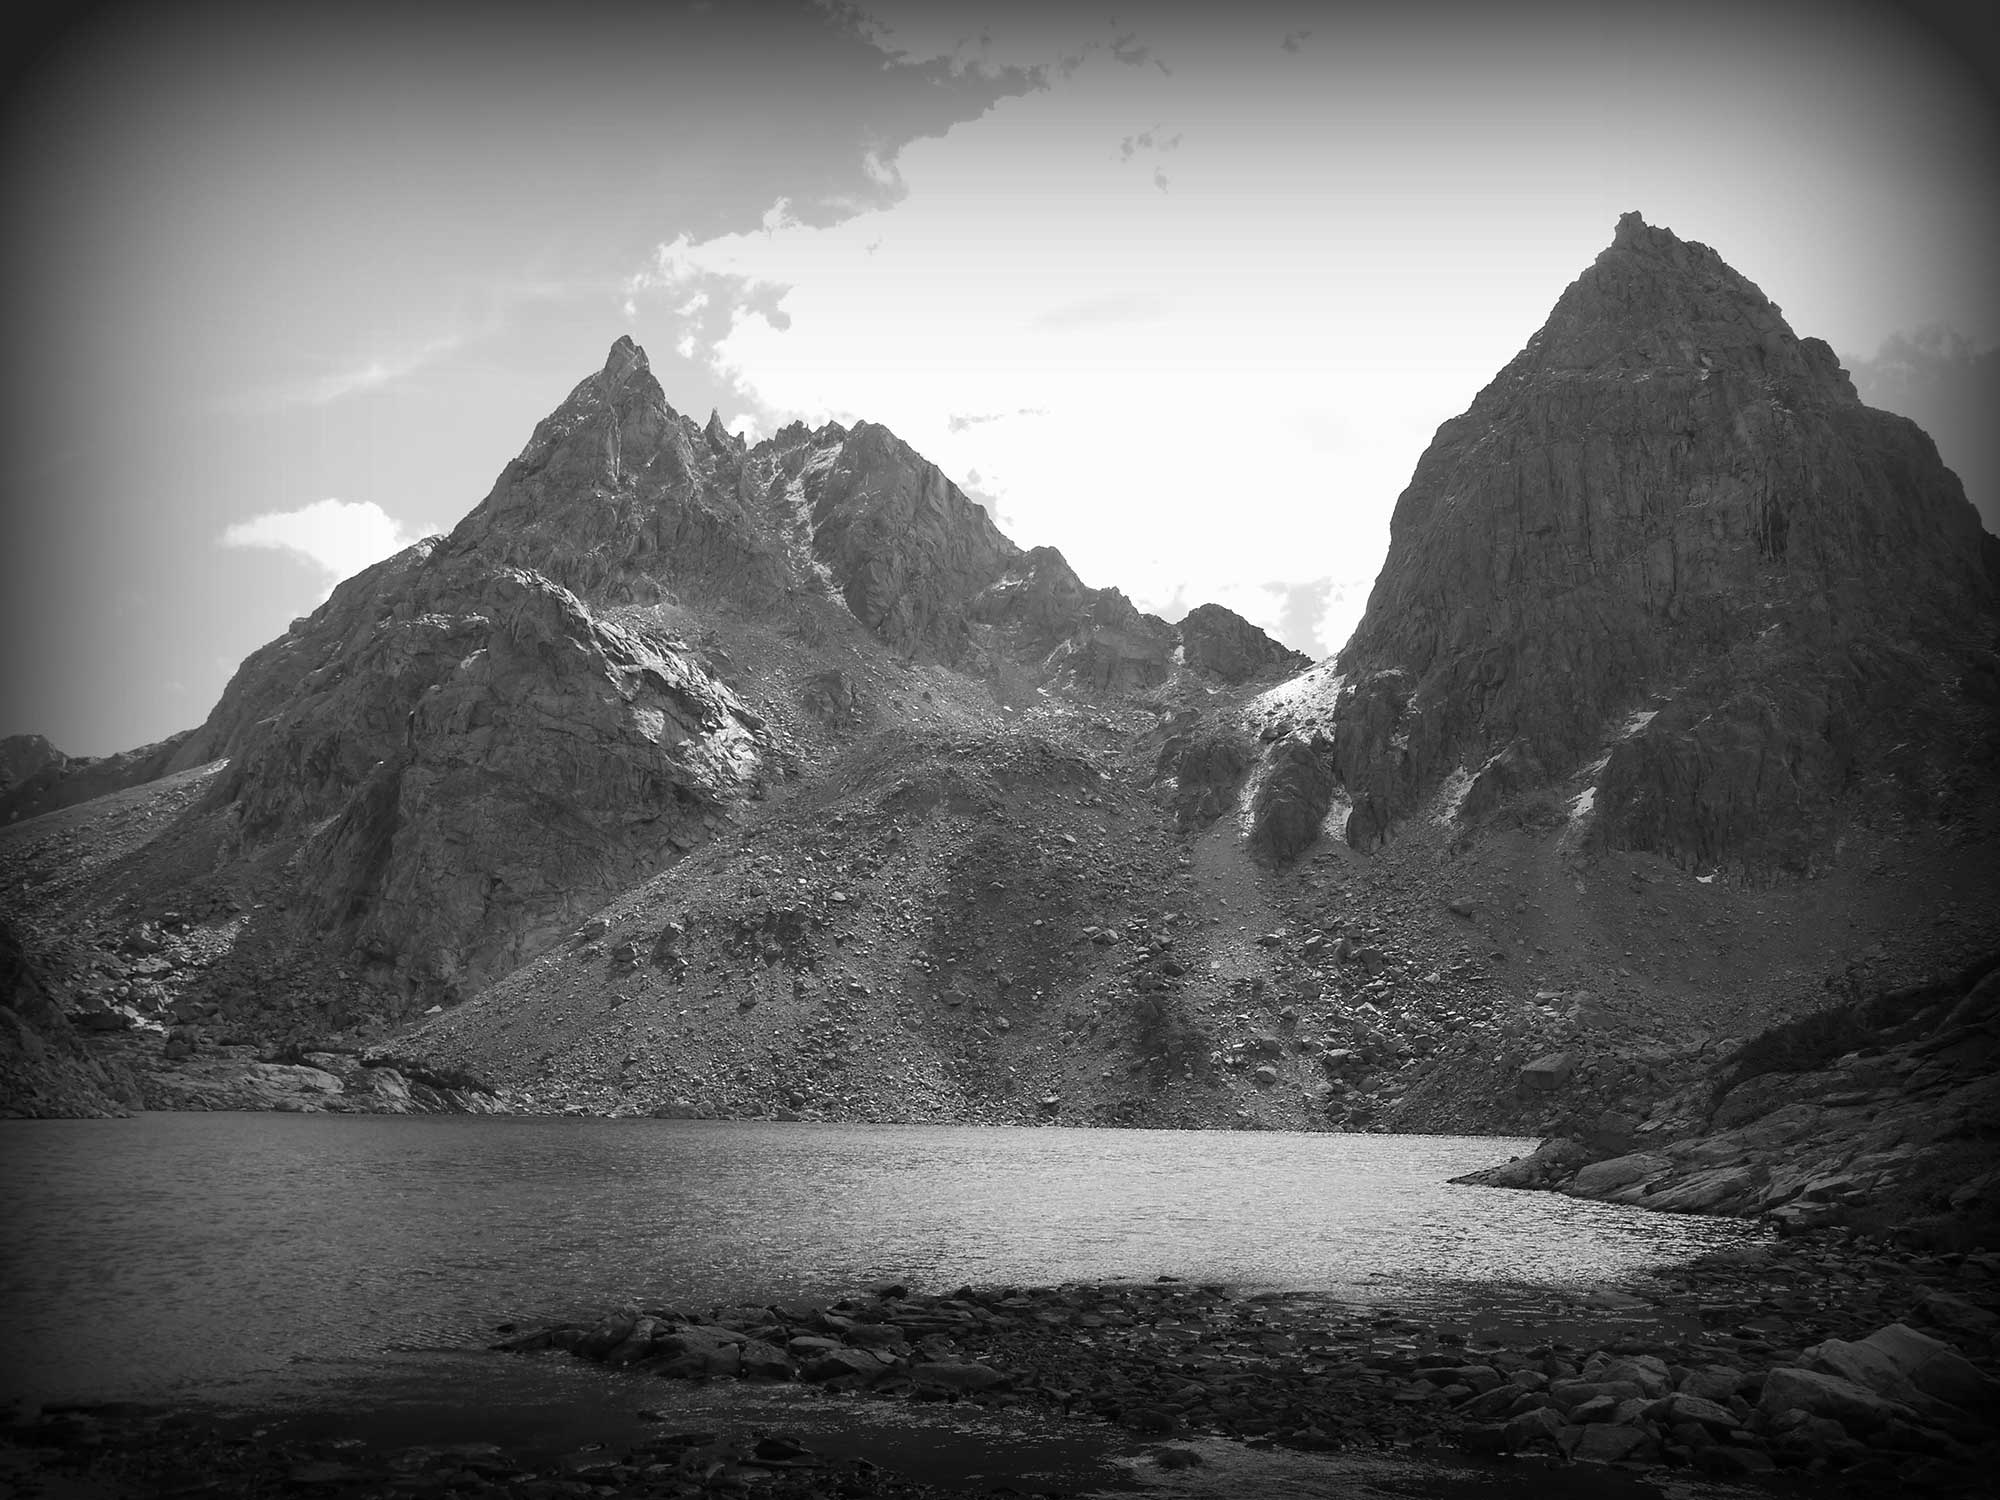 Stroud Peak and Peak Lake